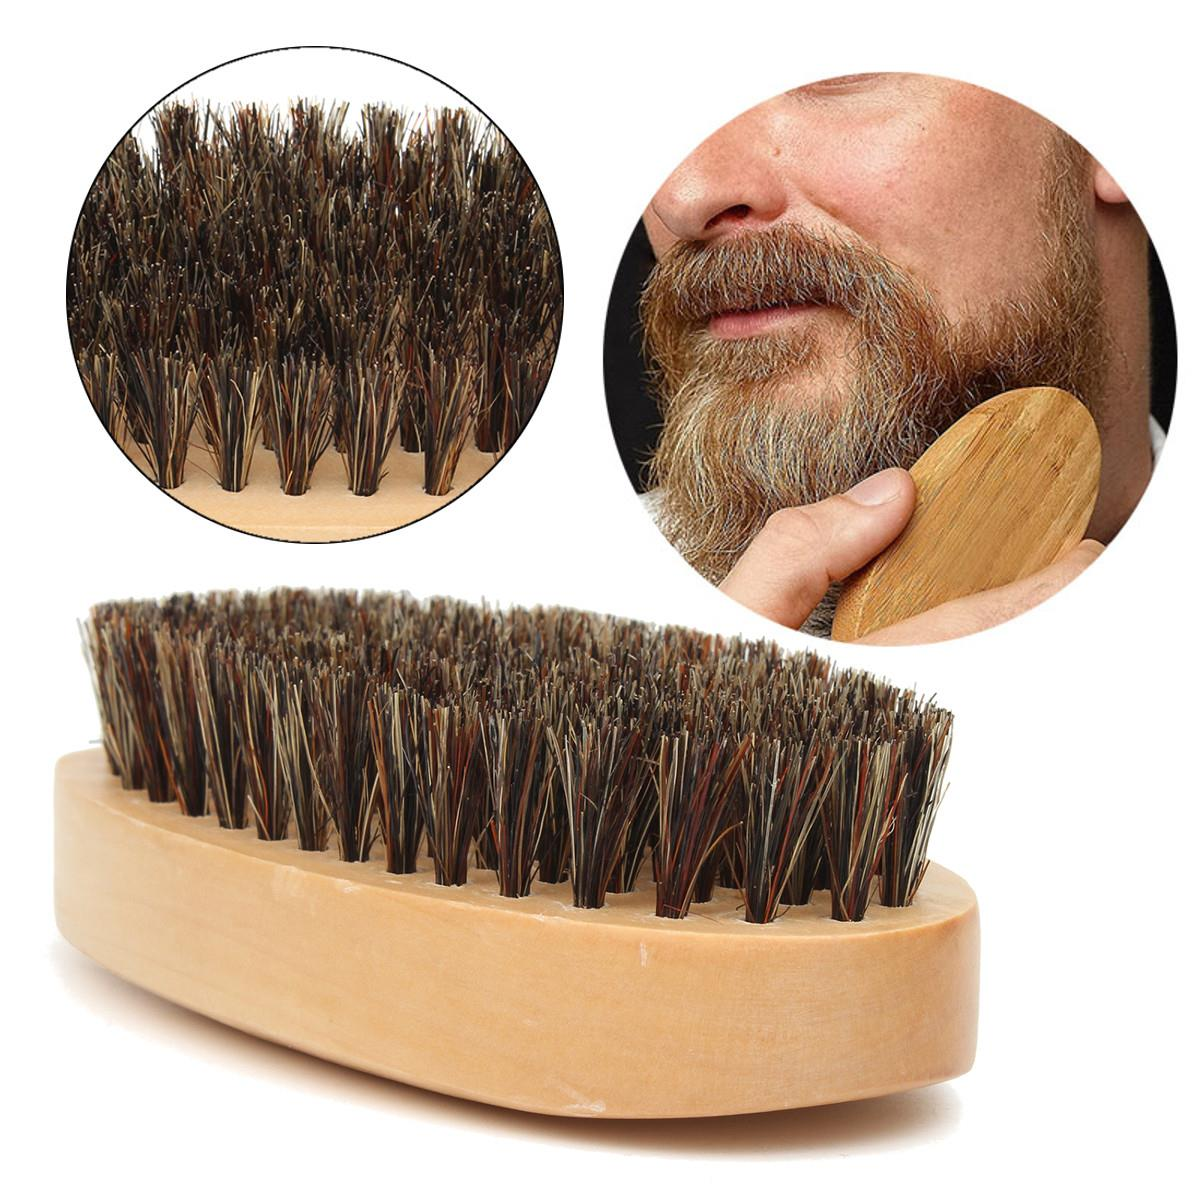 brush men Discover the art of grooming with the top 15 best beard brushes for men explore cool tools to brush away tangles and lint while straitening up strands.